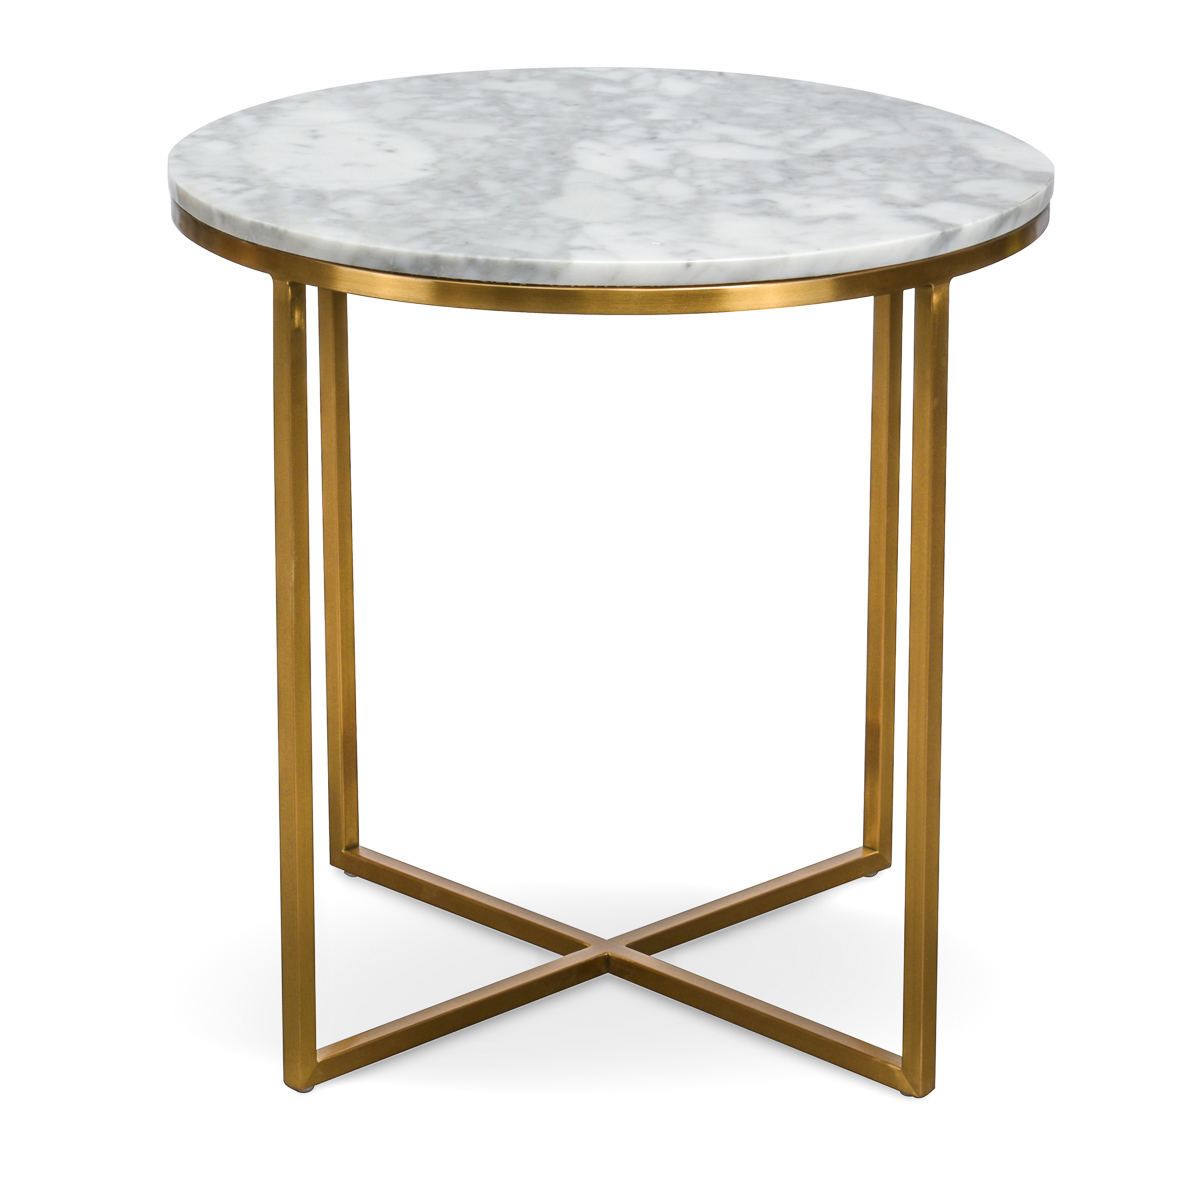 Target Pink Marble Accent Table Grottepastenaecollepardo Grottepastenaecollepardo